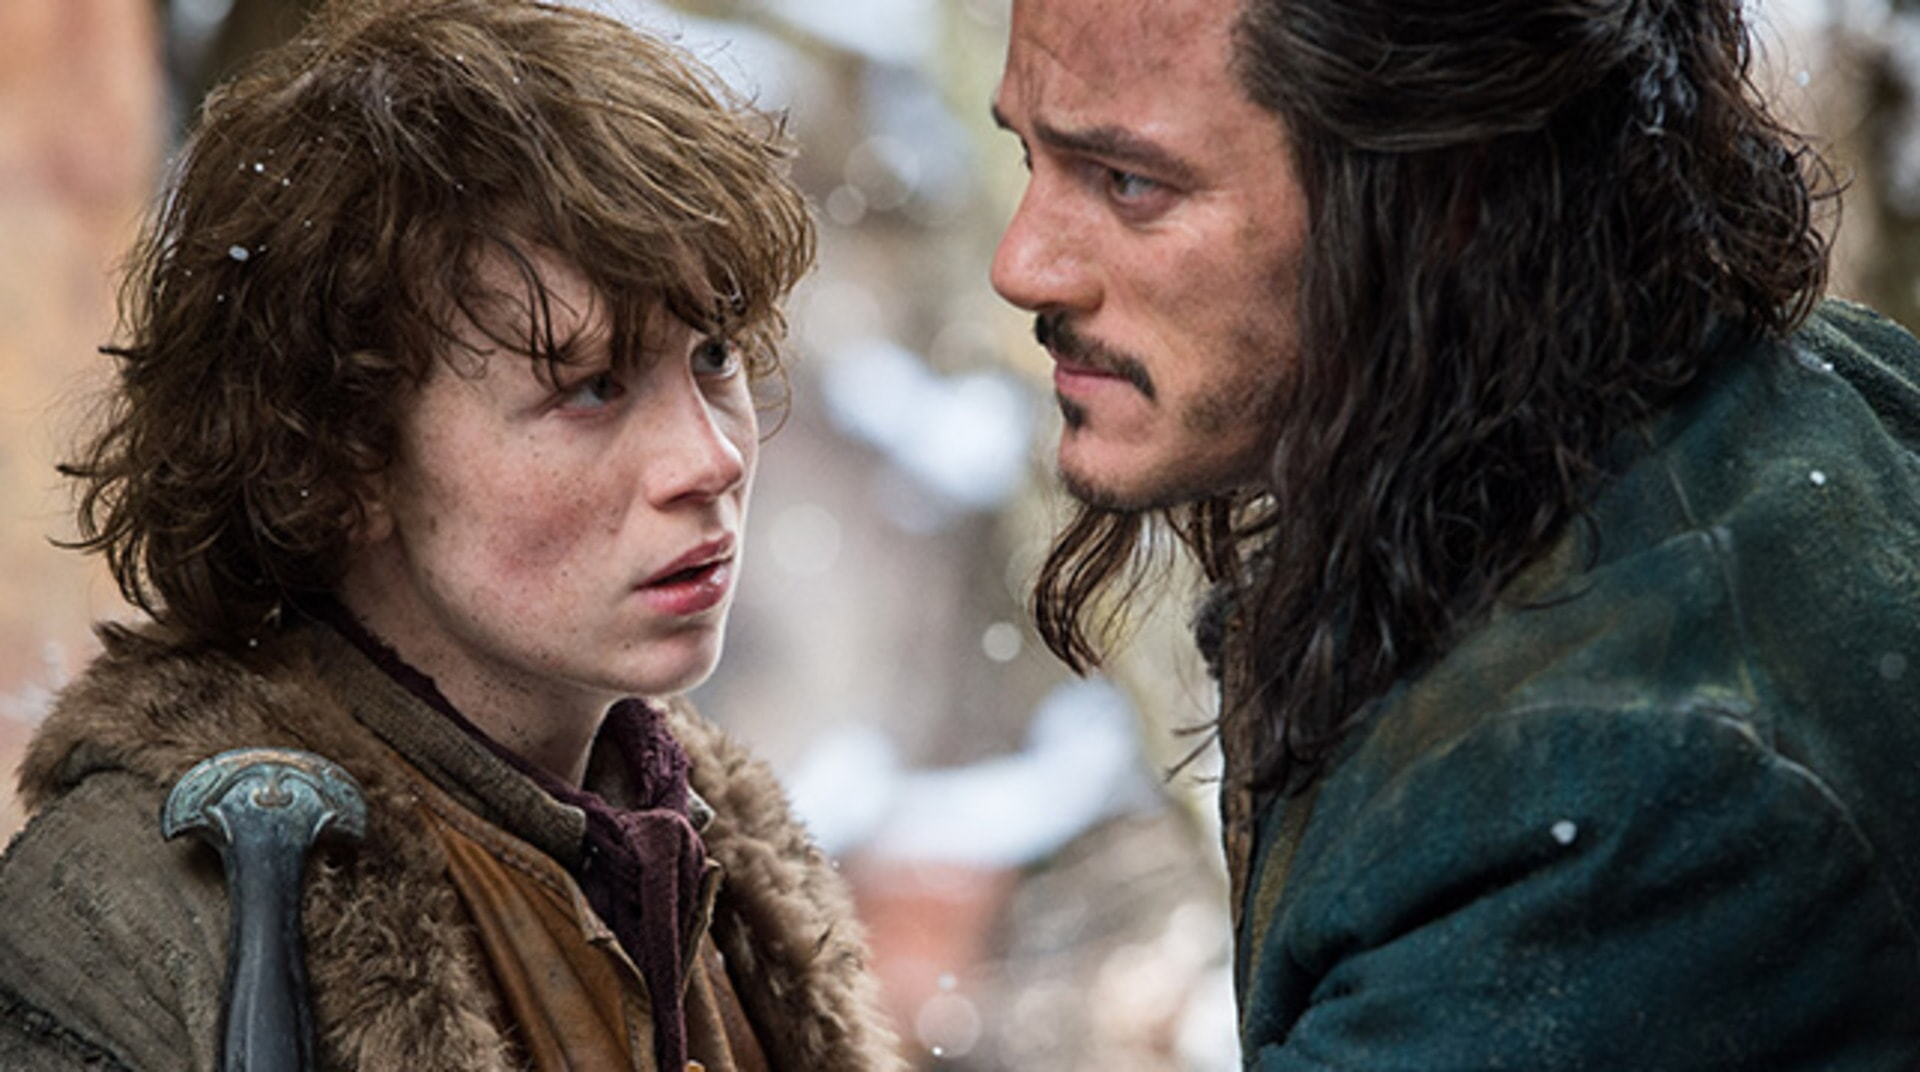 The Hobbit: The Battle of the Five Armies - Image 13